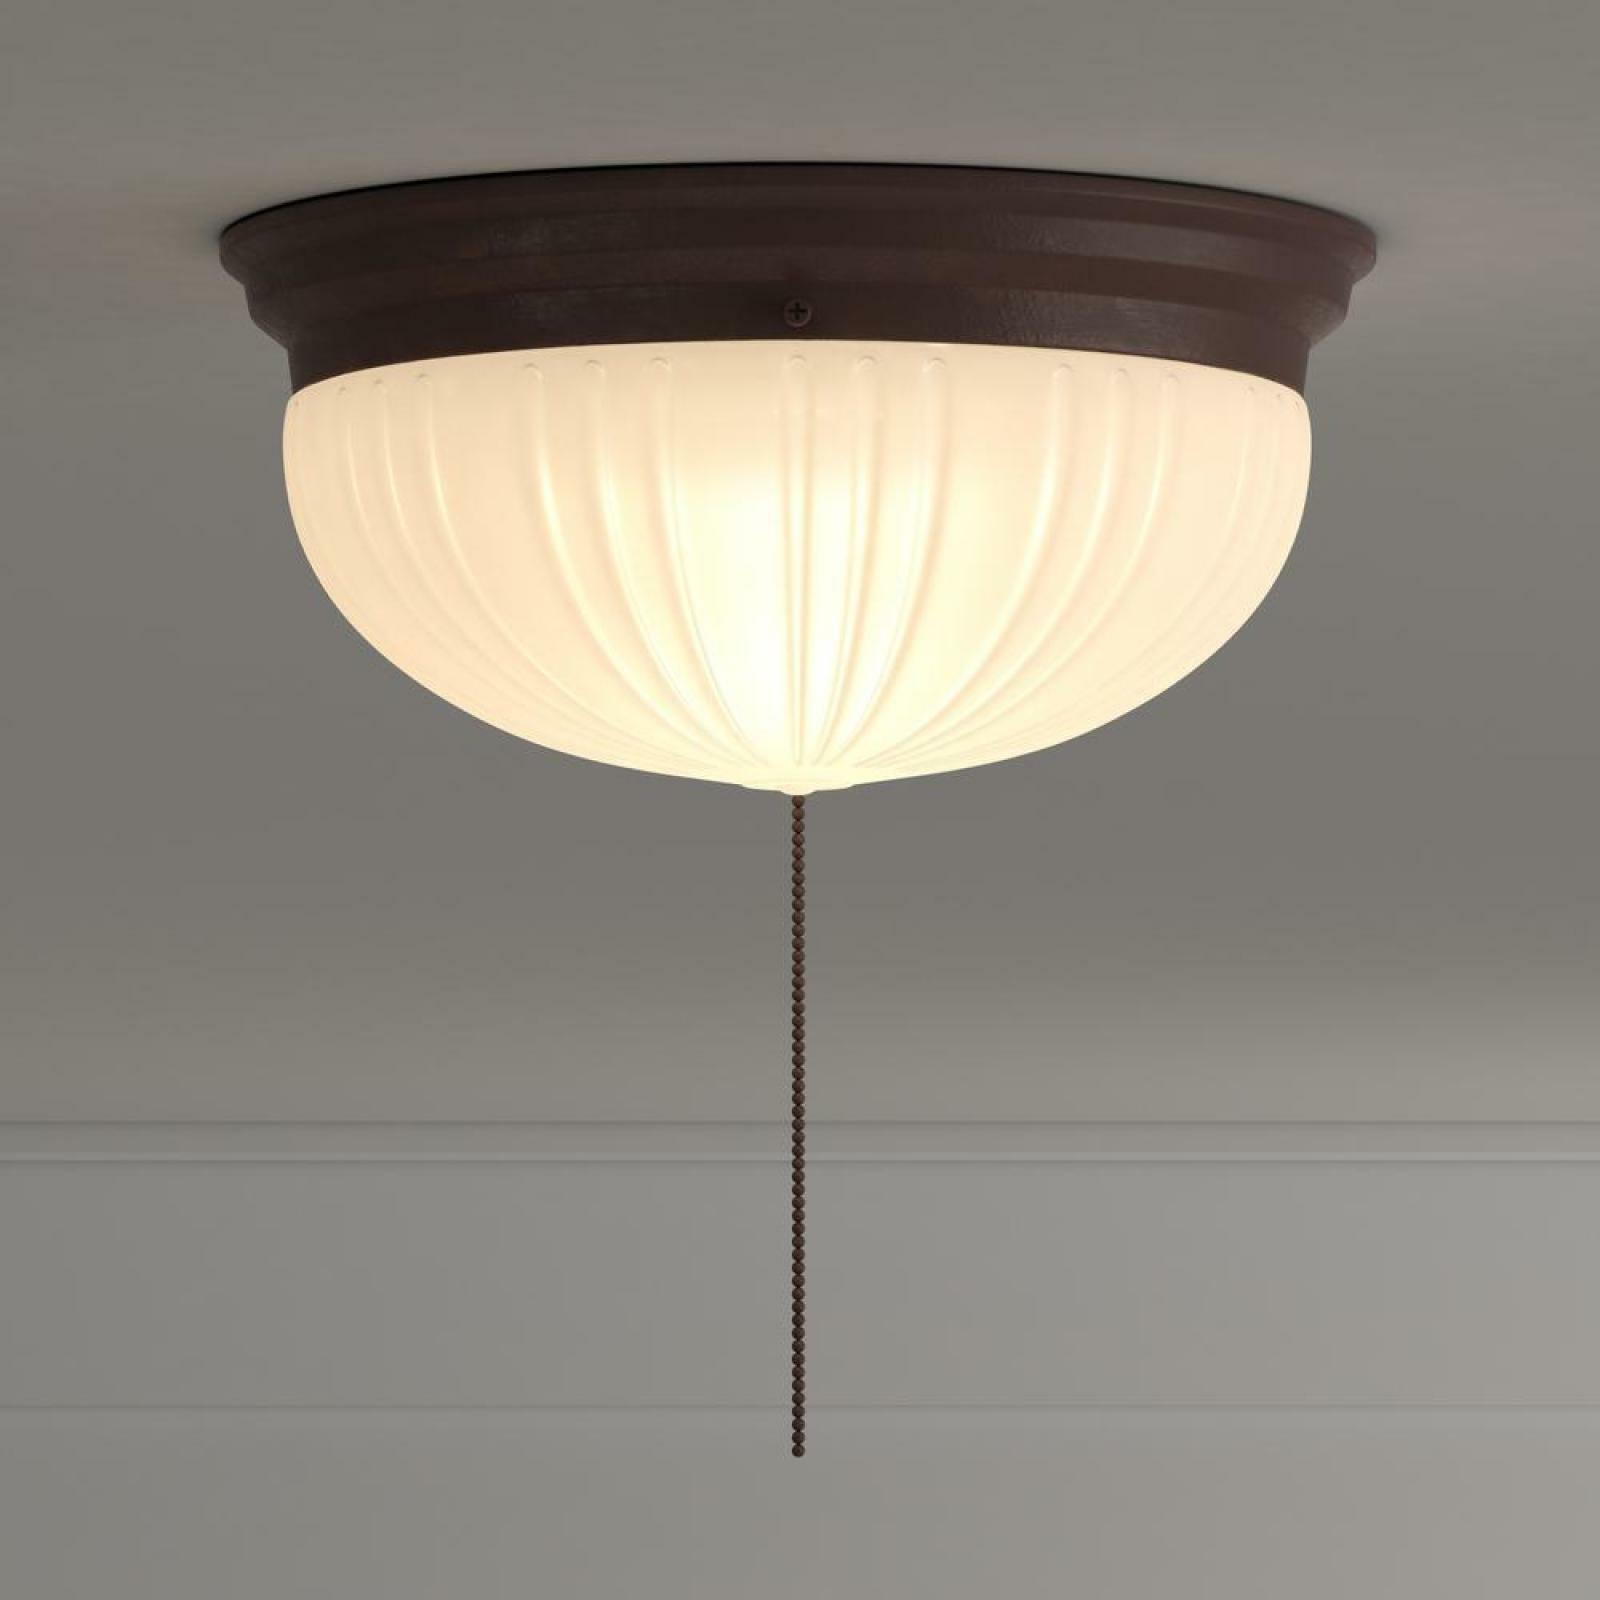 Westinghouse 2 Light Ceiling Fixture Sienna Interior Flush Mount With Pull Chain Ebay